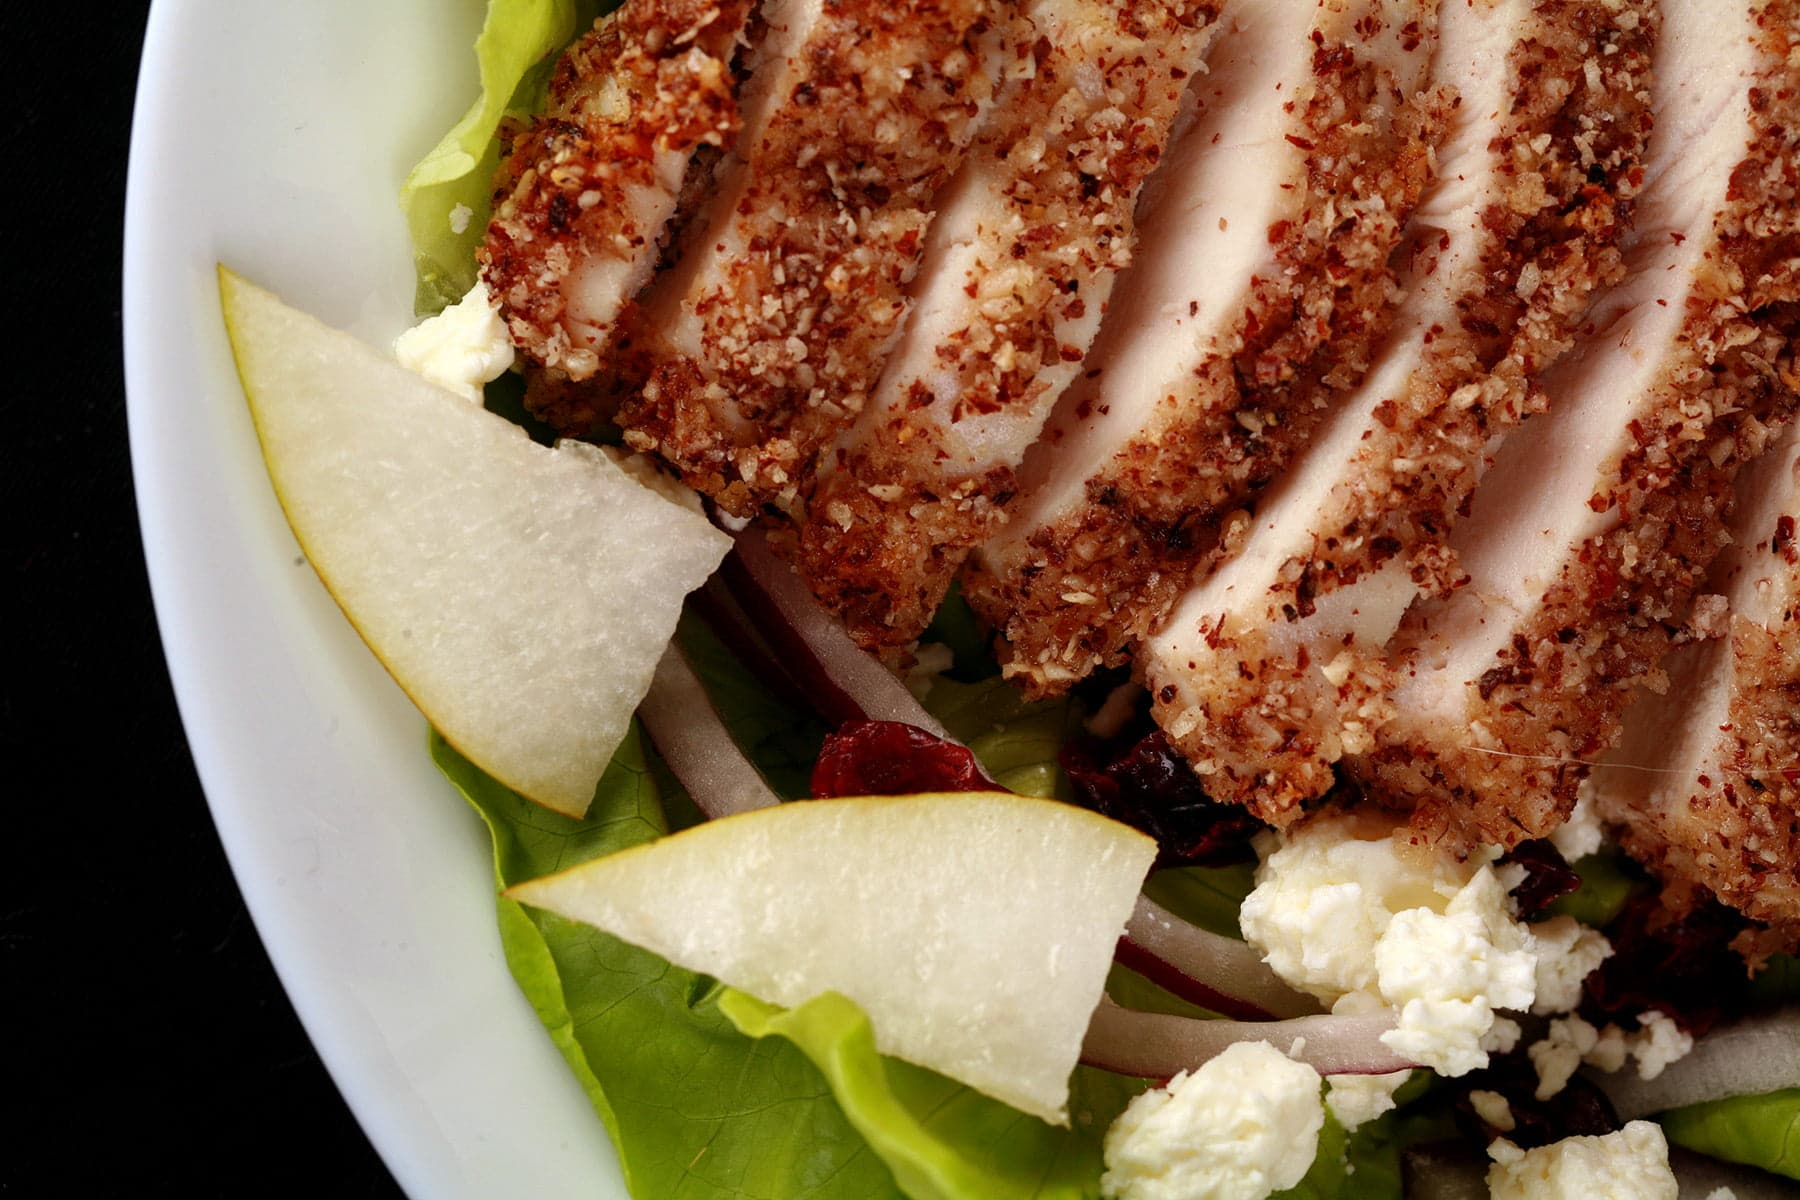 A sliced hazelnut crusted chicken breast sits a top a salad of greens, pear slices, dried cranberries, red onion slices, and feta.